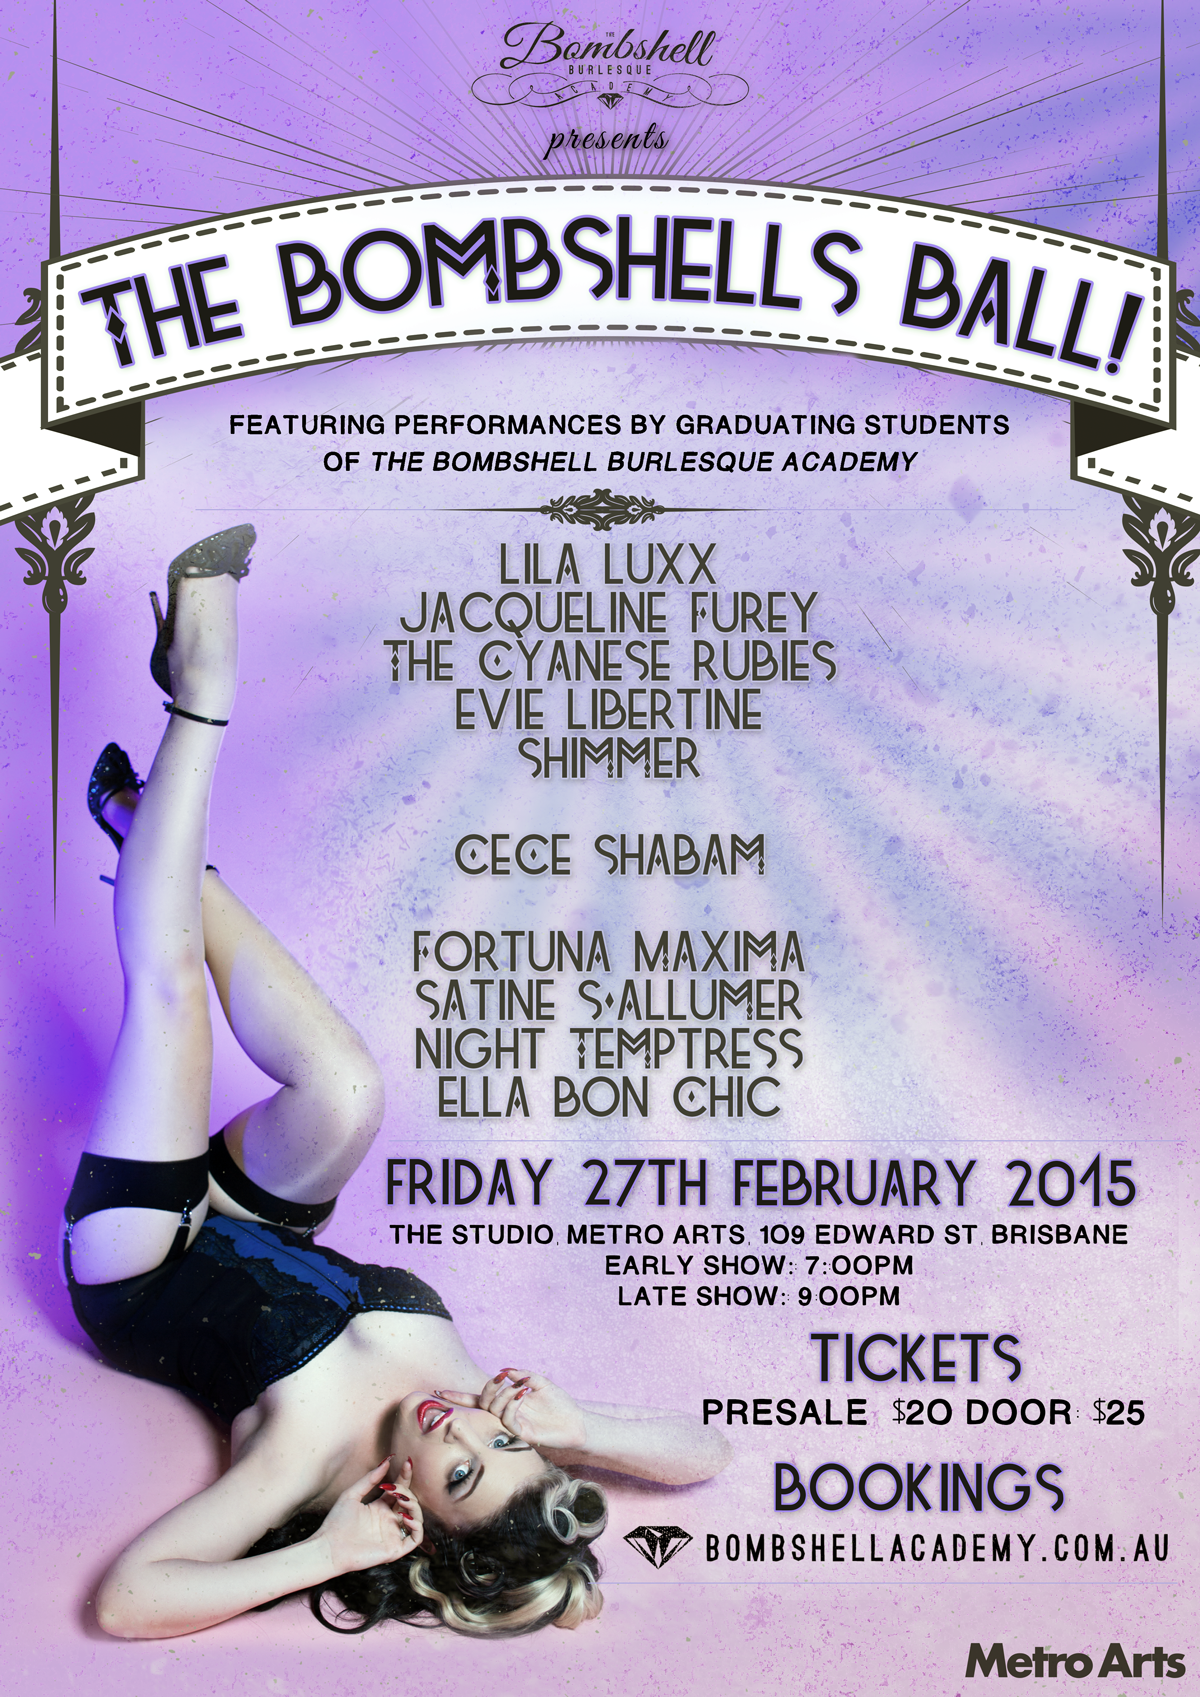 The Bombshells Ball